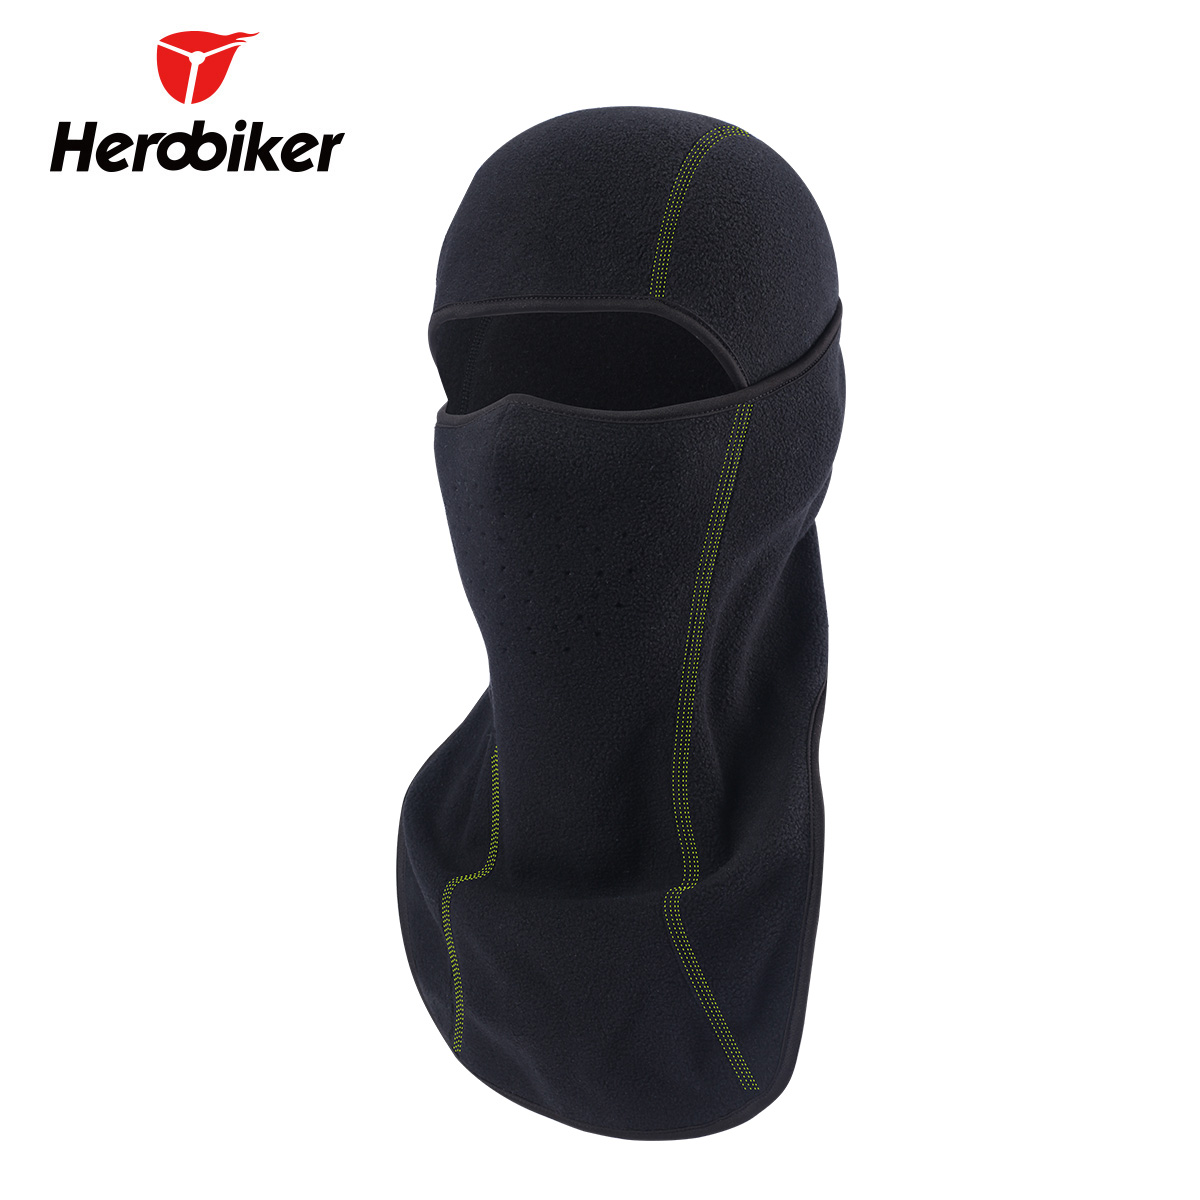 HEROBIKER Motorcycle Face Mask Shawl Autumn Winter Thermal Fleece Face Shield Mask Moto Balaclava Windproof Cycling Ski Scarf herobikermotorcycle face mask balaclava motorcycle neck warmer motorcycle ski caps bicycle scarf moto mask mascara moto